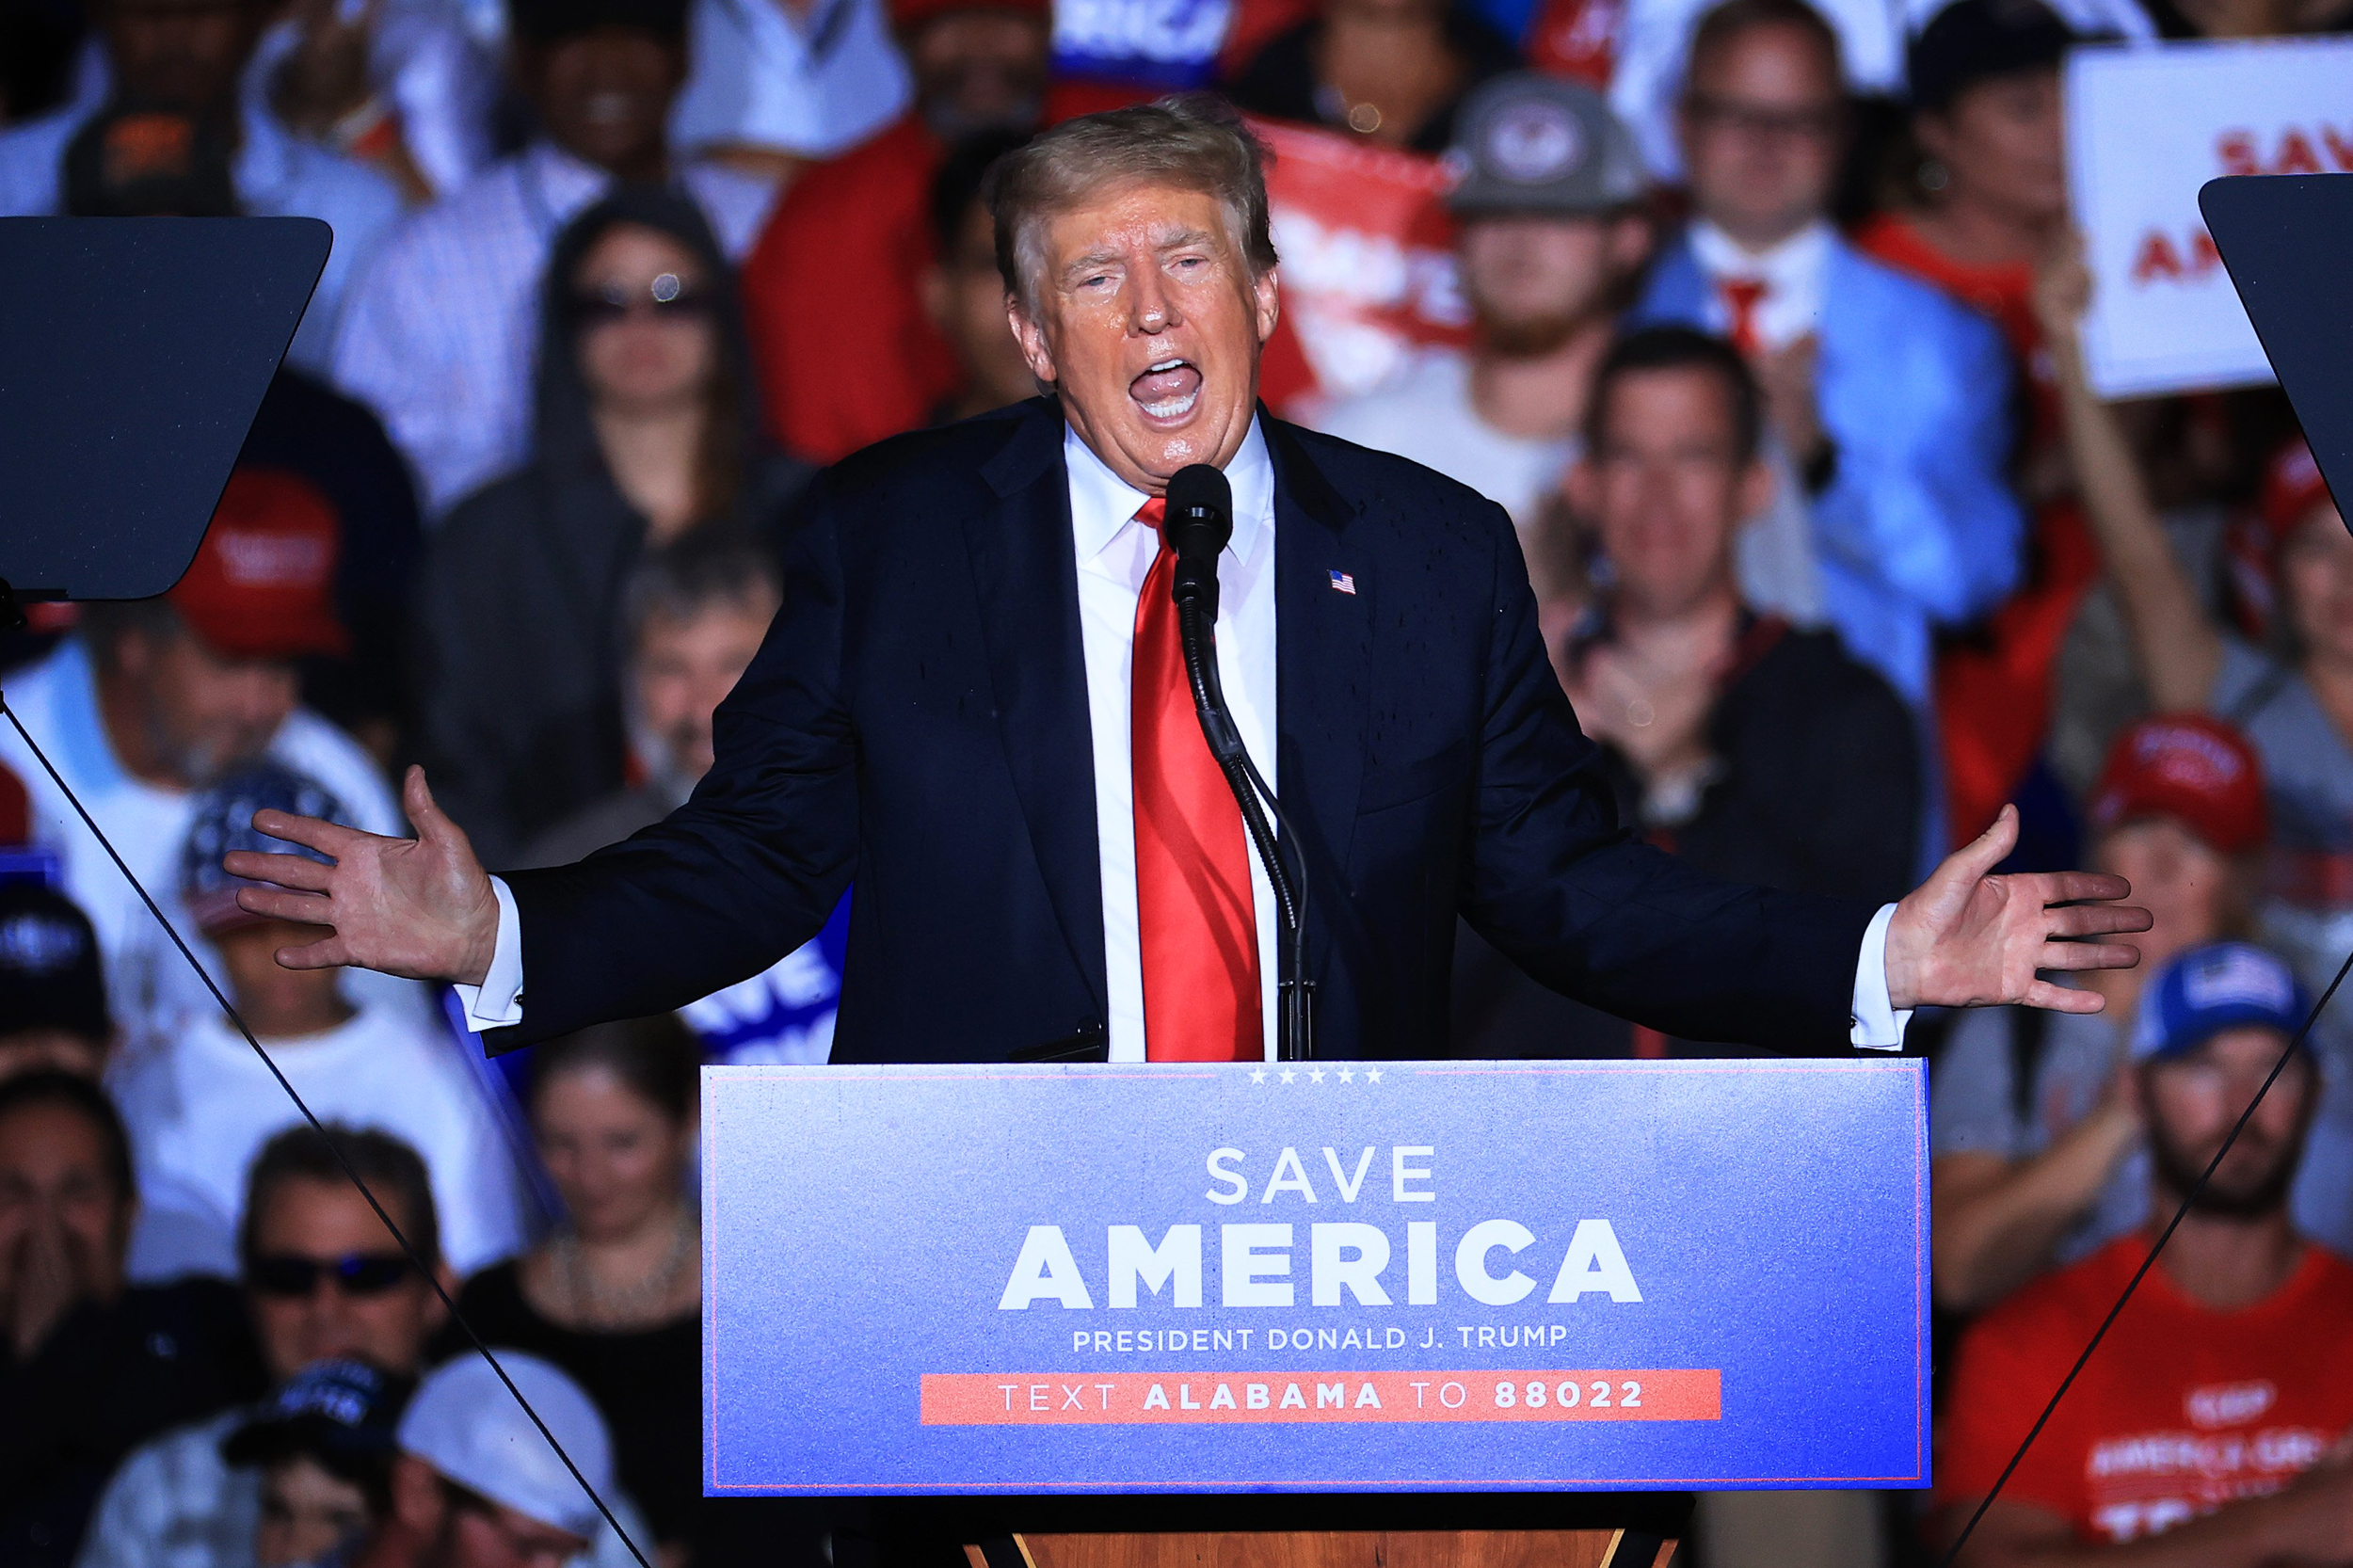 Trump Booed at Alabama Rally After Telling Supporters to Get Vaccinated